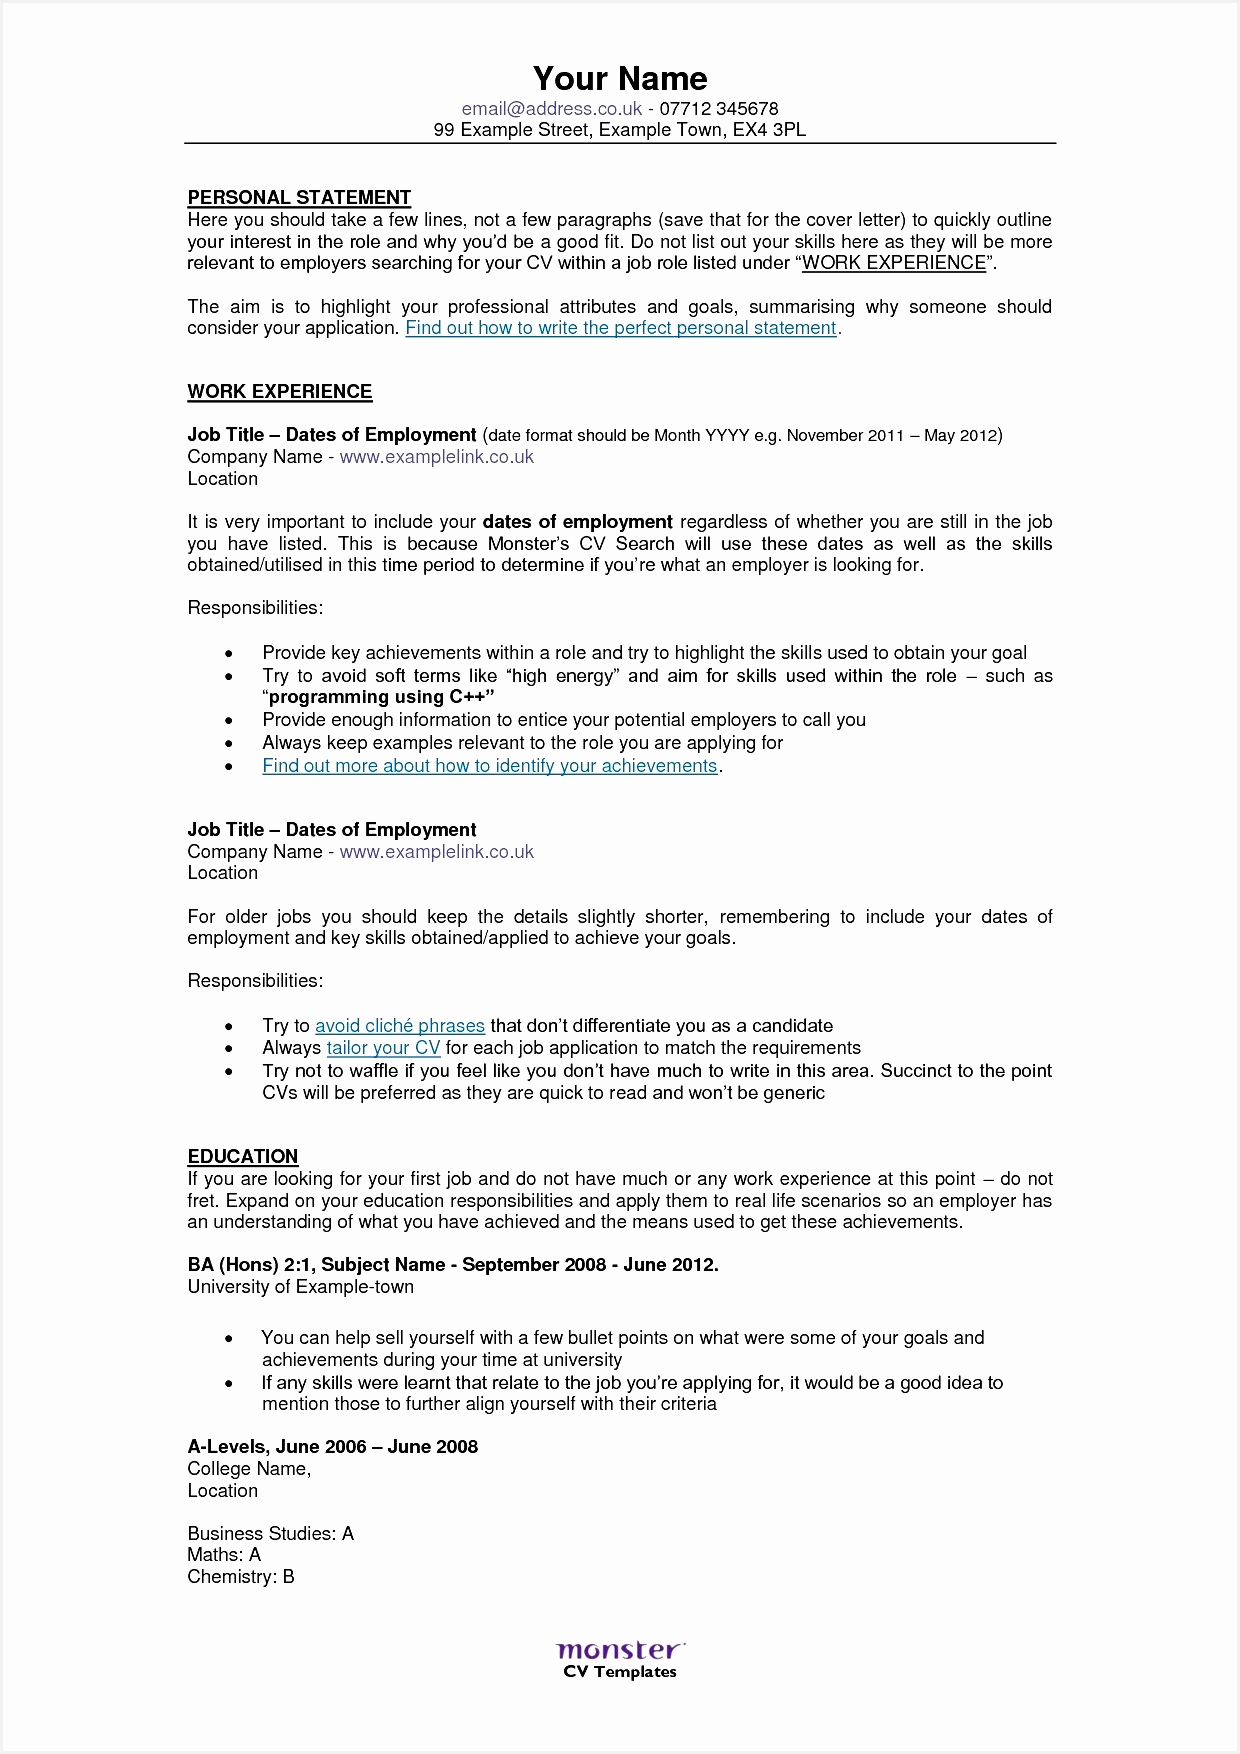 6 Cv Template Personal Statement Free Samples Examples